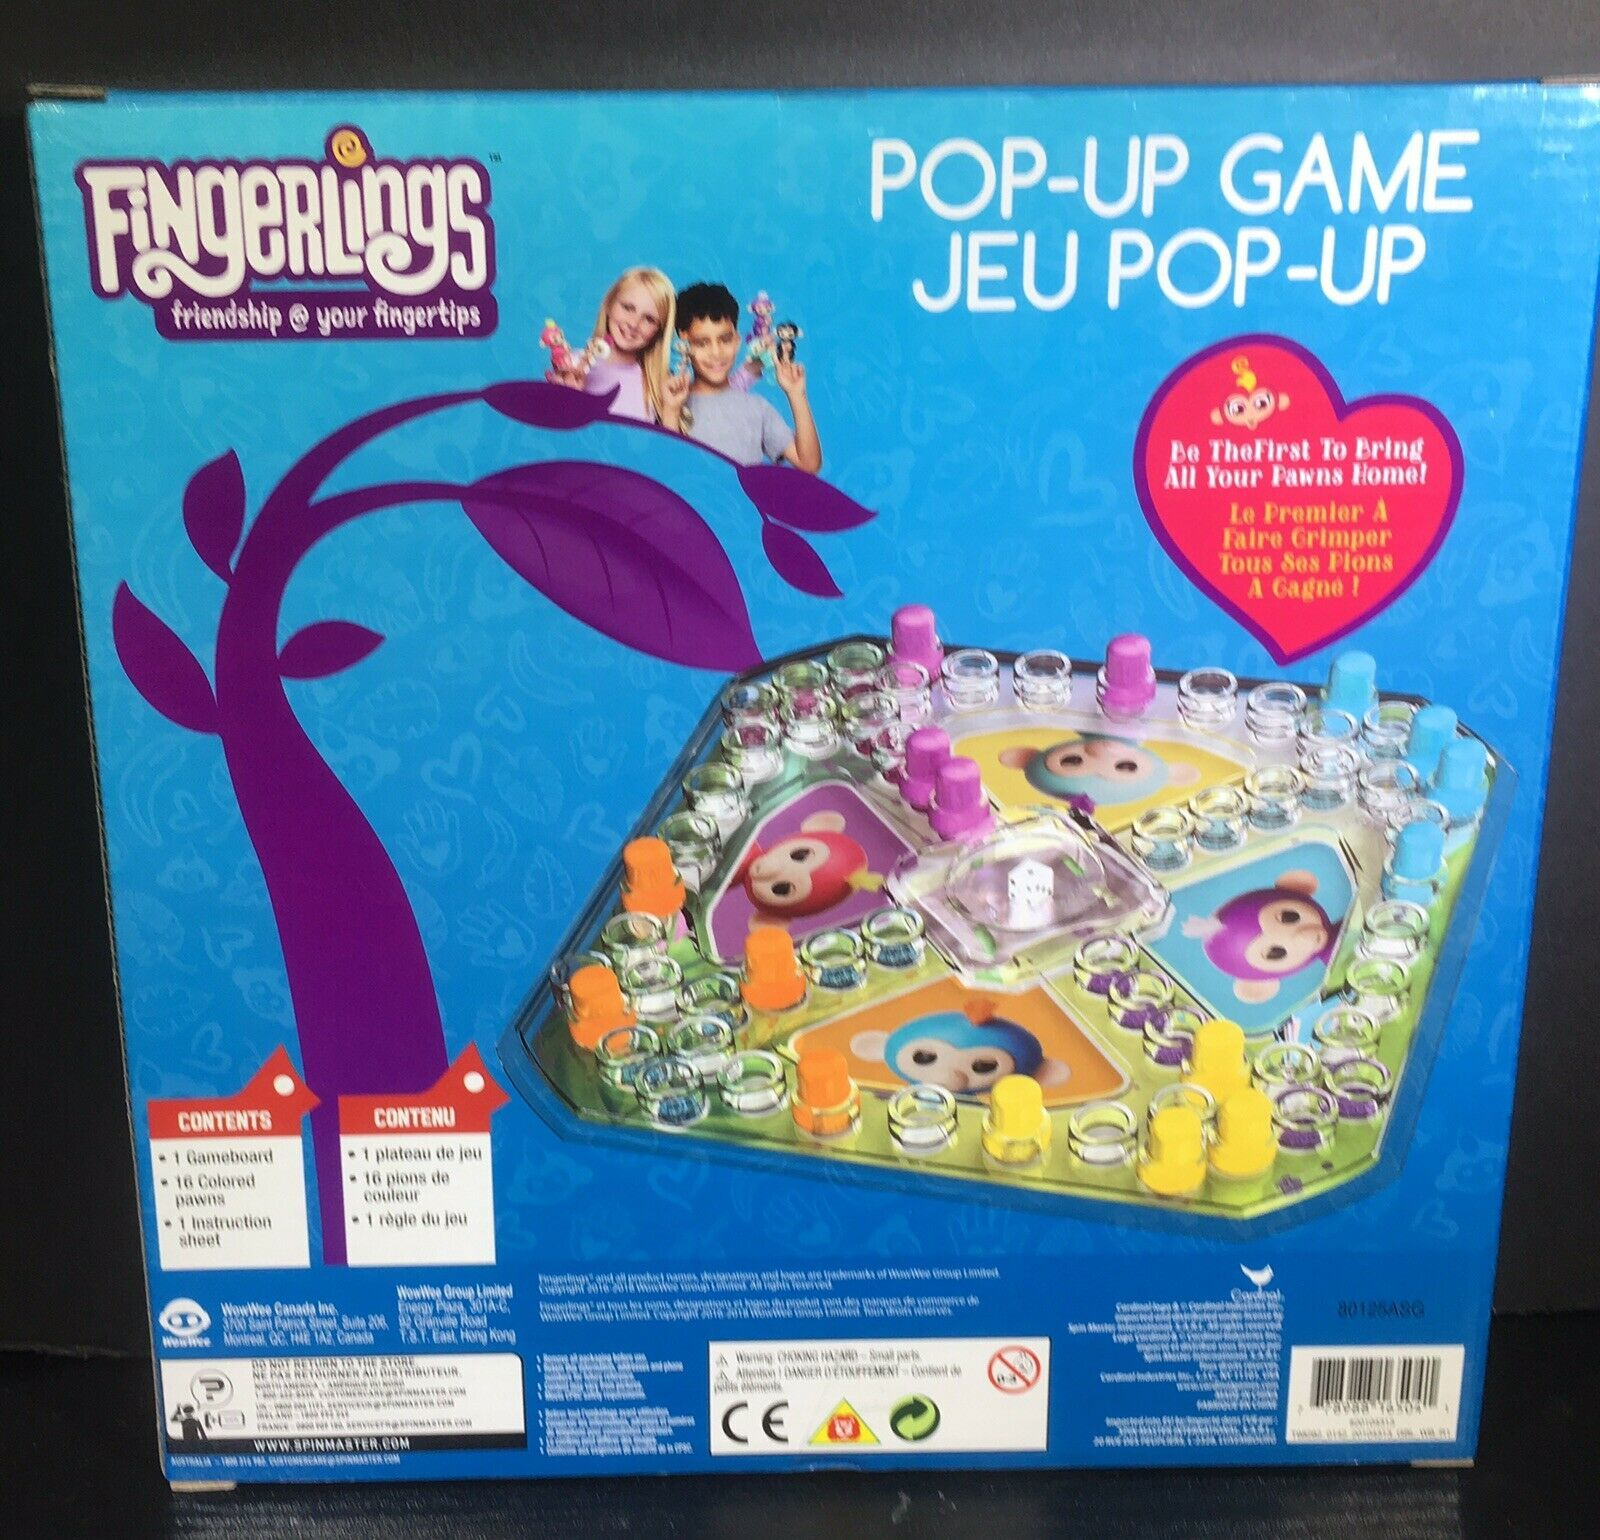 New Fingerlings Pop-Up Game - Friendship At your fingertips by Cardinal